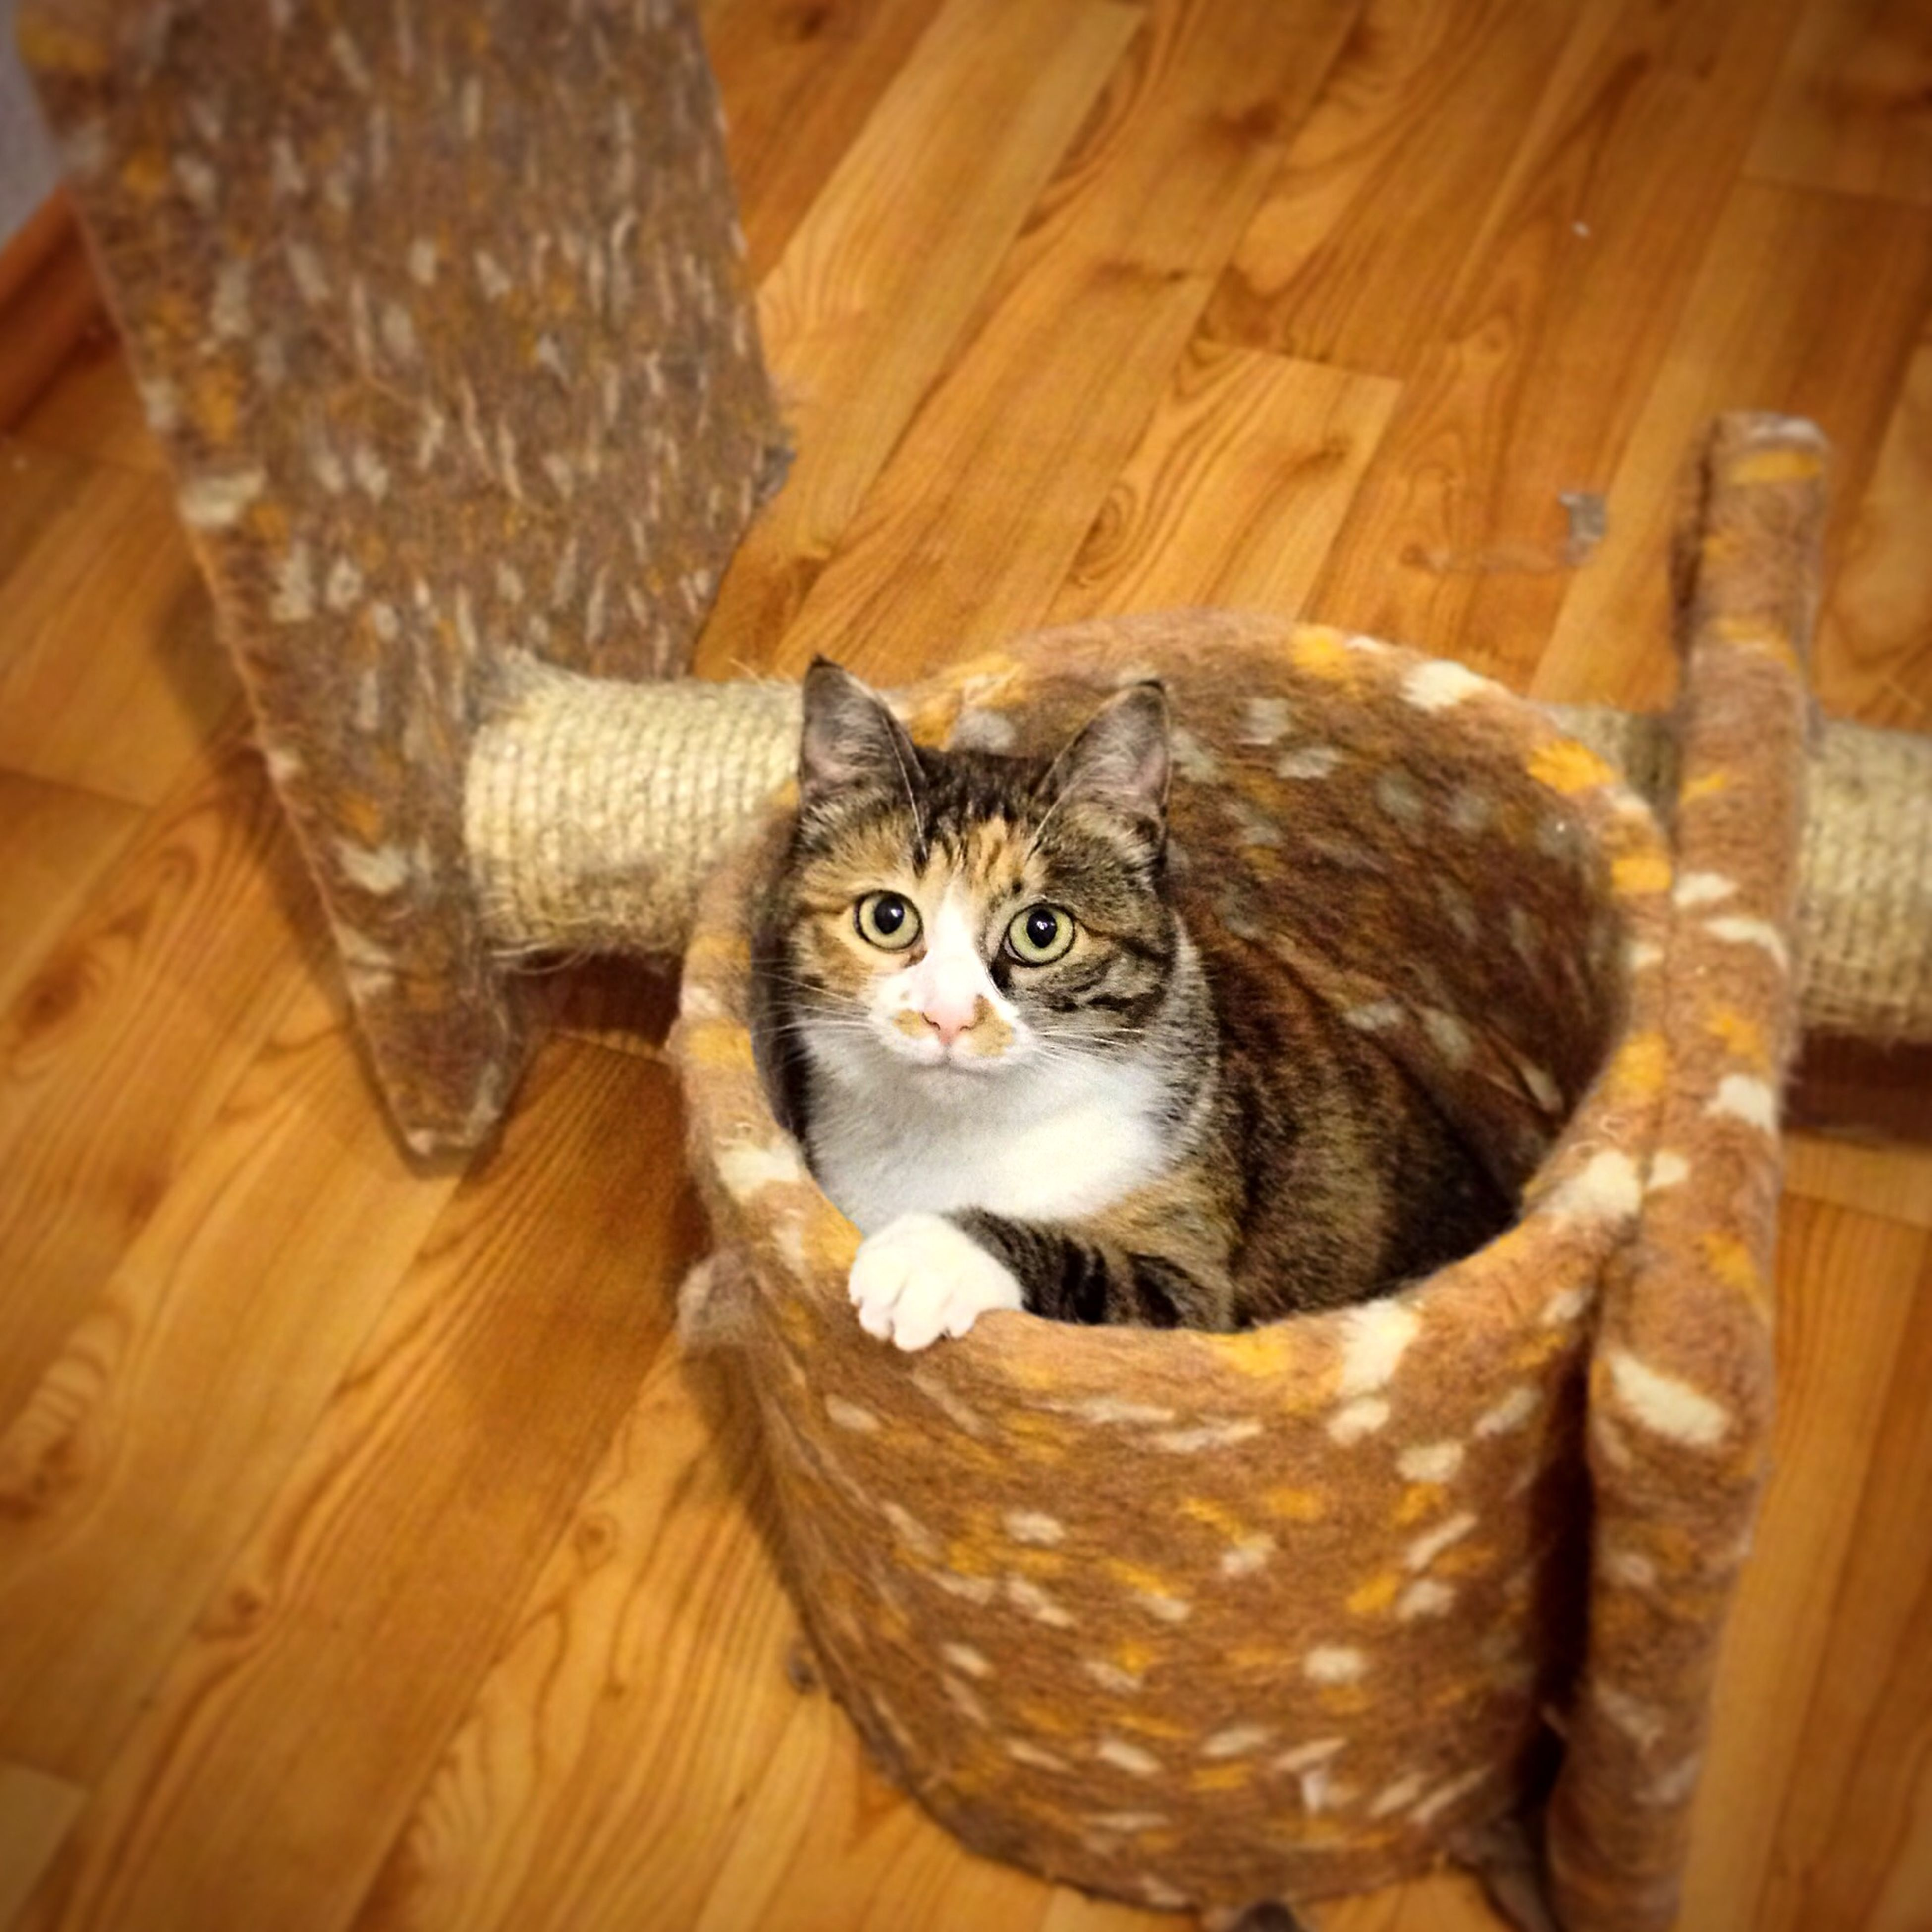 indoors, animal themes, pets, domestic animals, one animal, looking at camera, portrait, domestic cat, mammal, cat, home interior, basket, high angle view, table, close-up, relaxation, whisker, no people, feline, food and drink